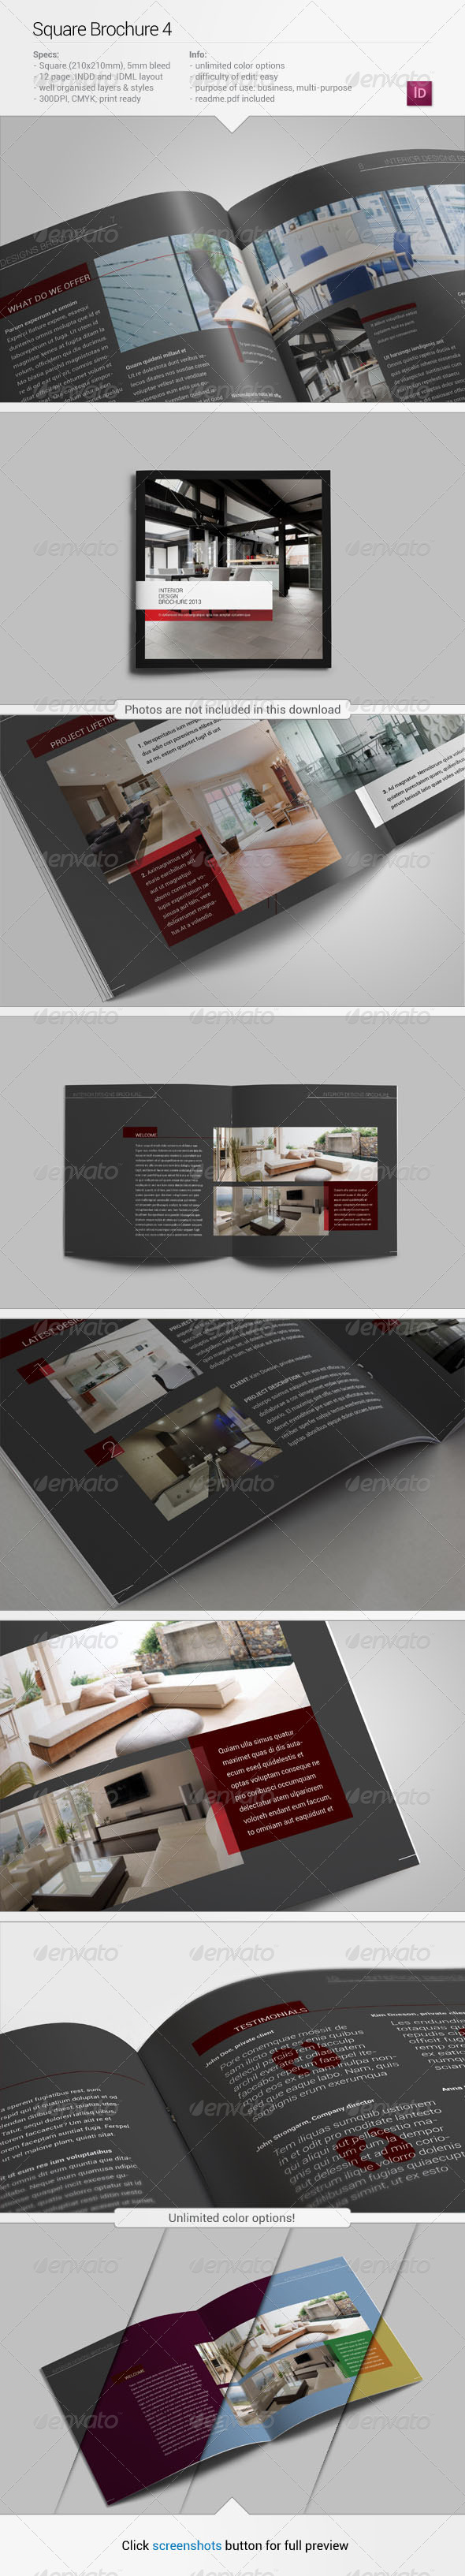 GraphicRiver Square Brochure 4 5410280